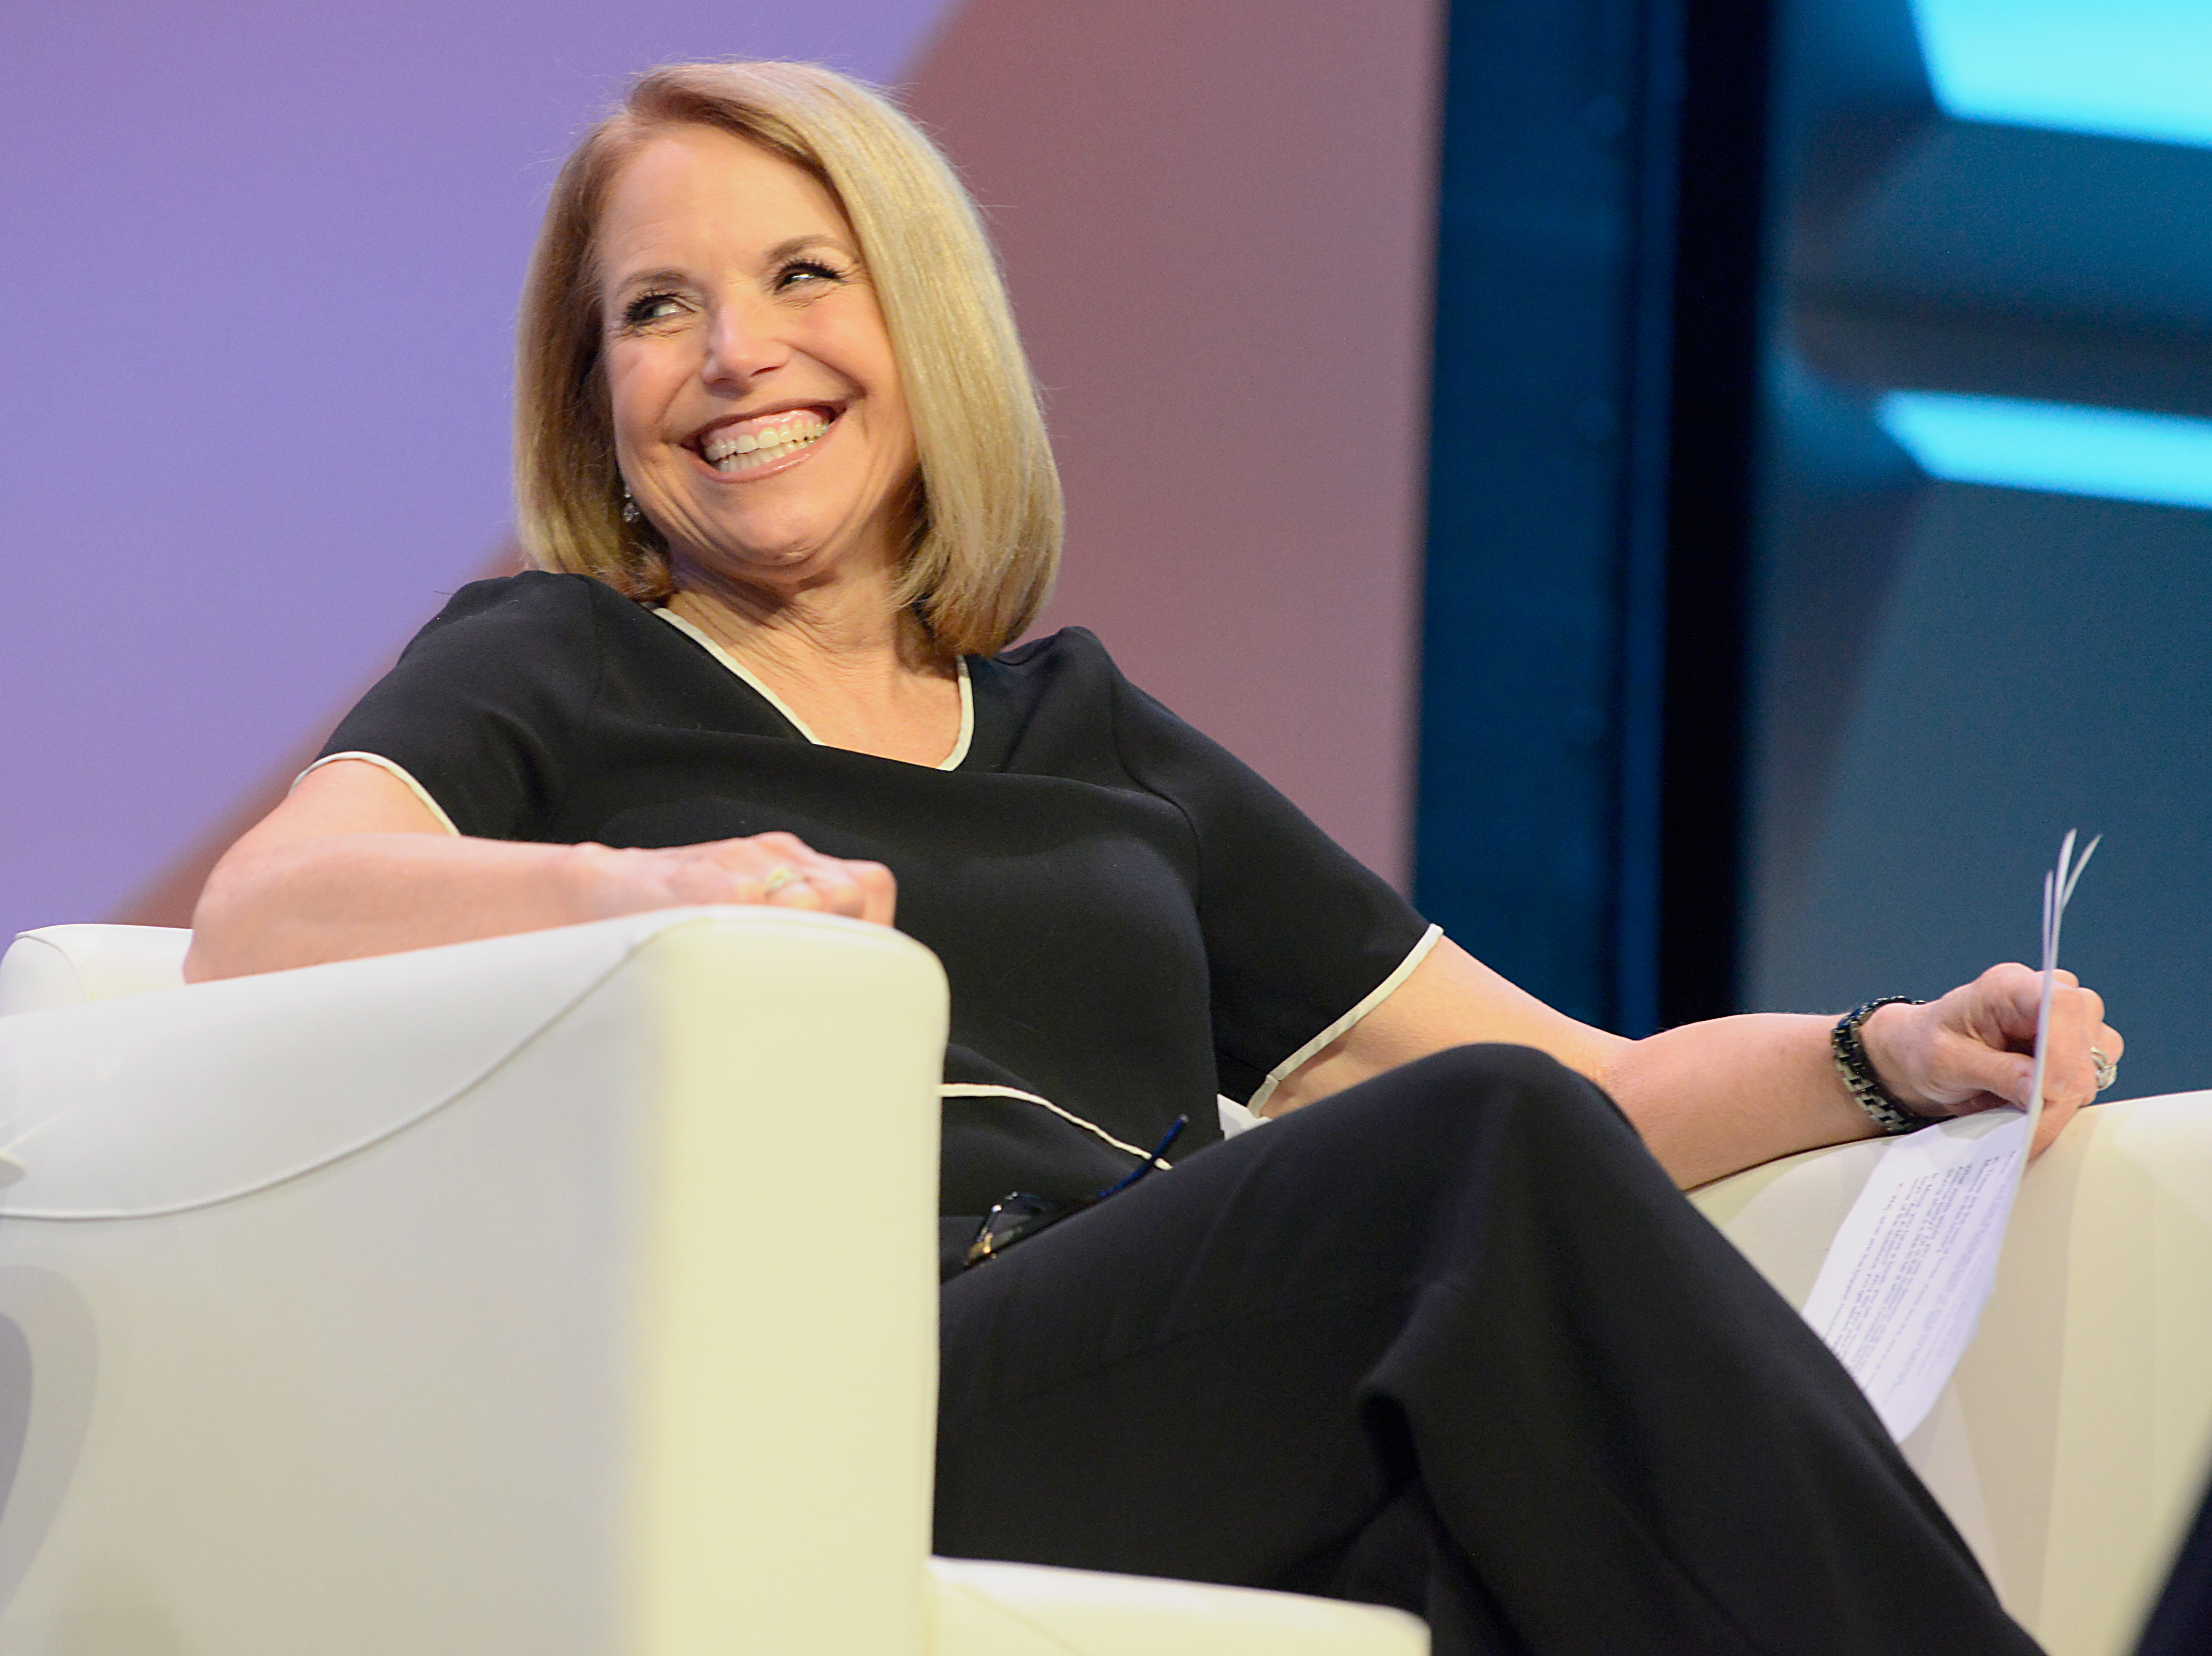 Katie Couric speaks onstage at Katie Couric podcast LIVE: The Muslim Next Door during SXSW at Austin Convention Center on March 11, 2018 in Austin, Texas. (Photo by Nicola Gell/Getty Images for SXSW)